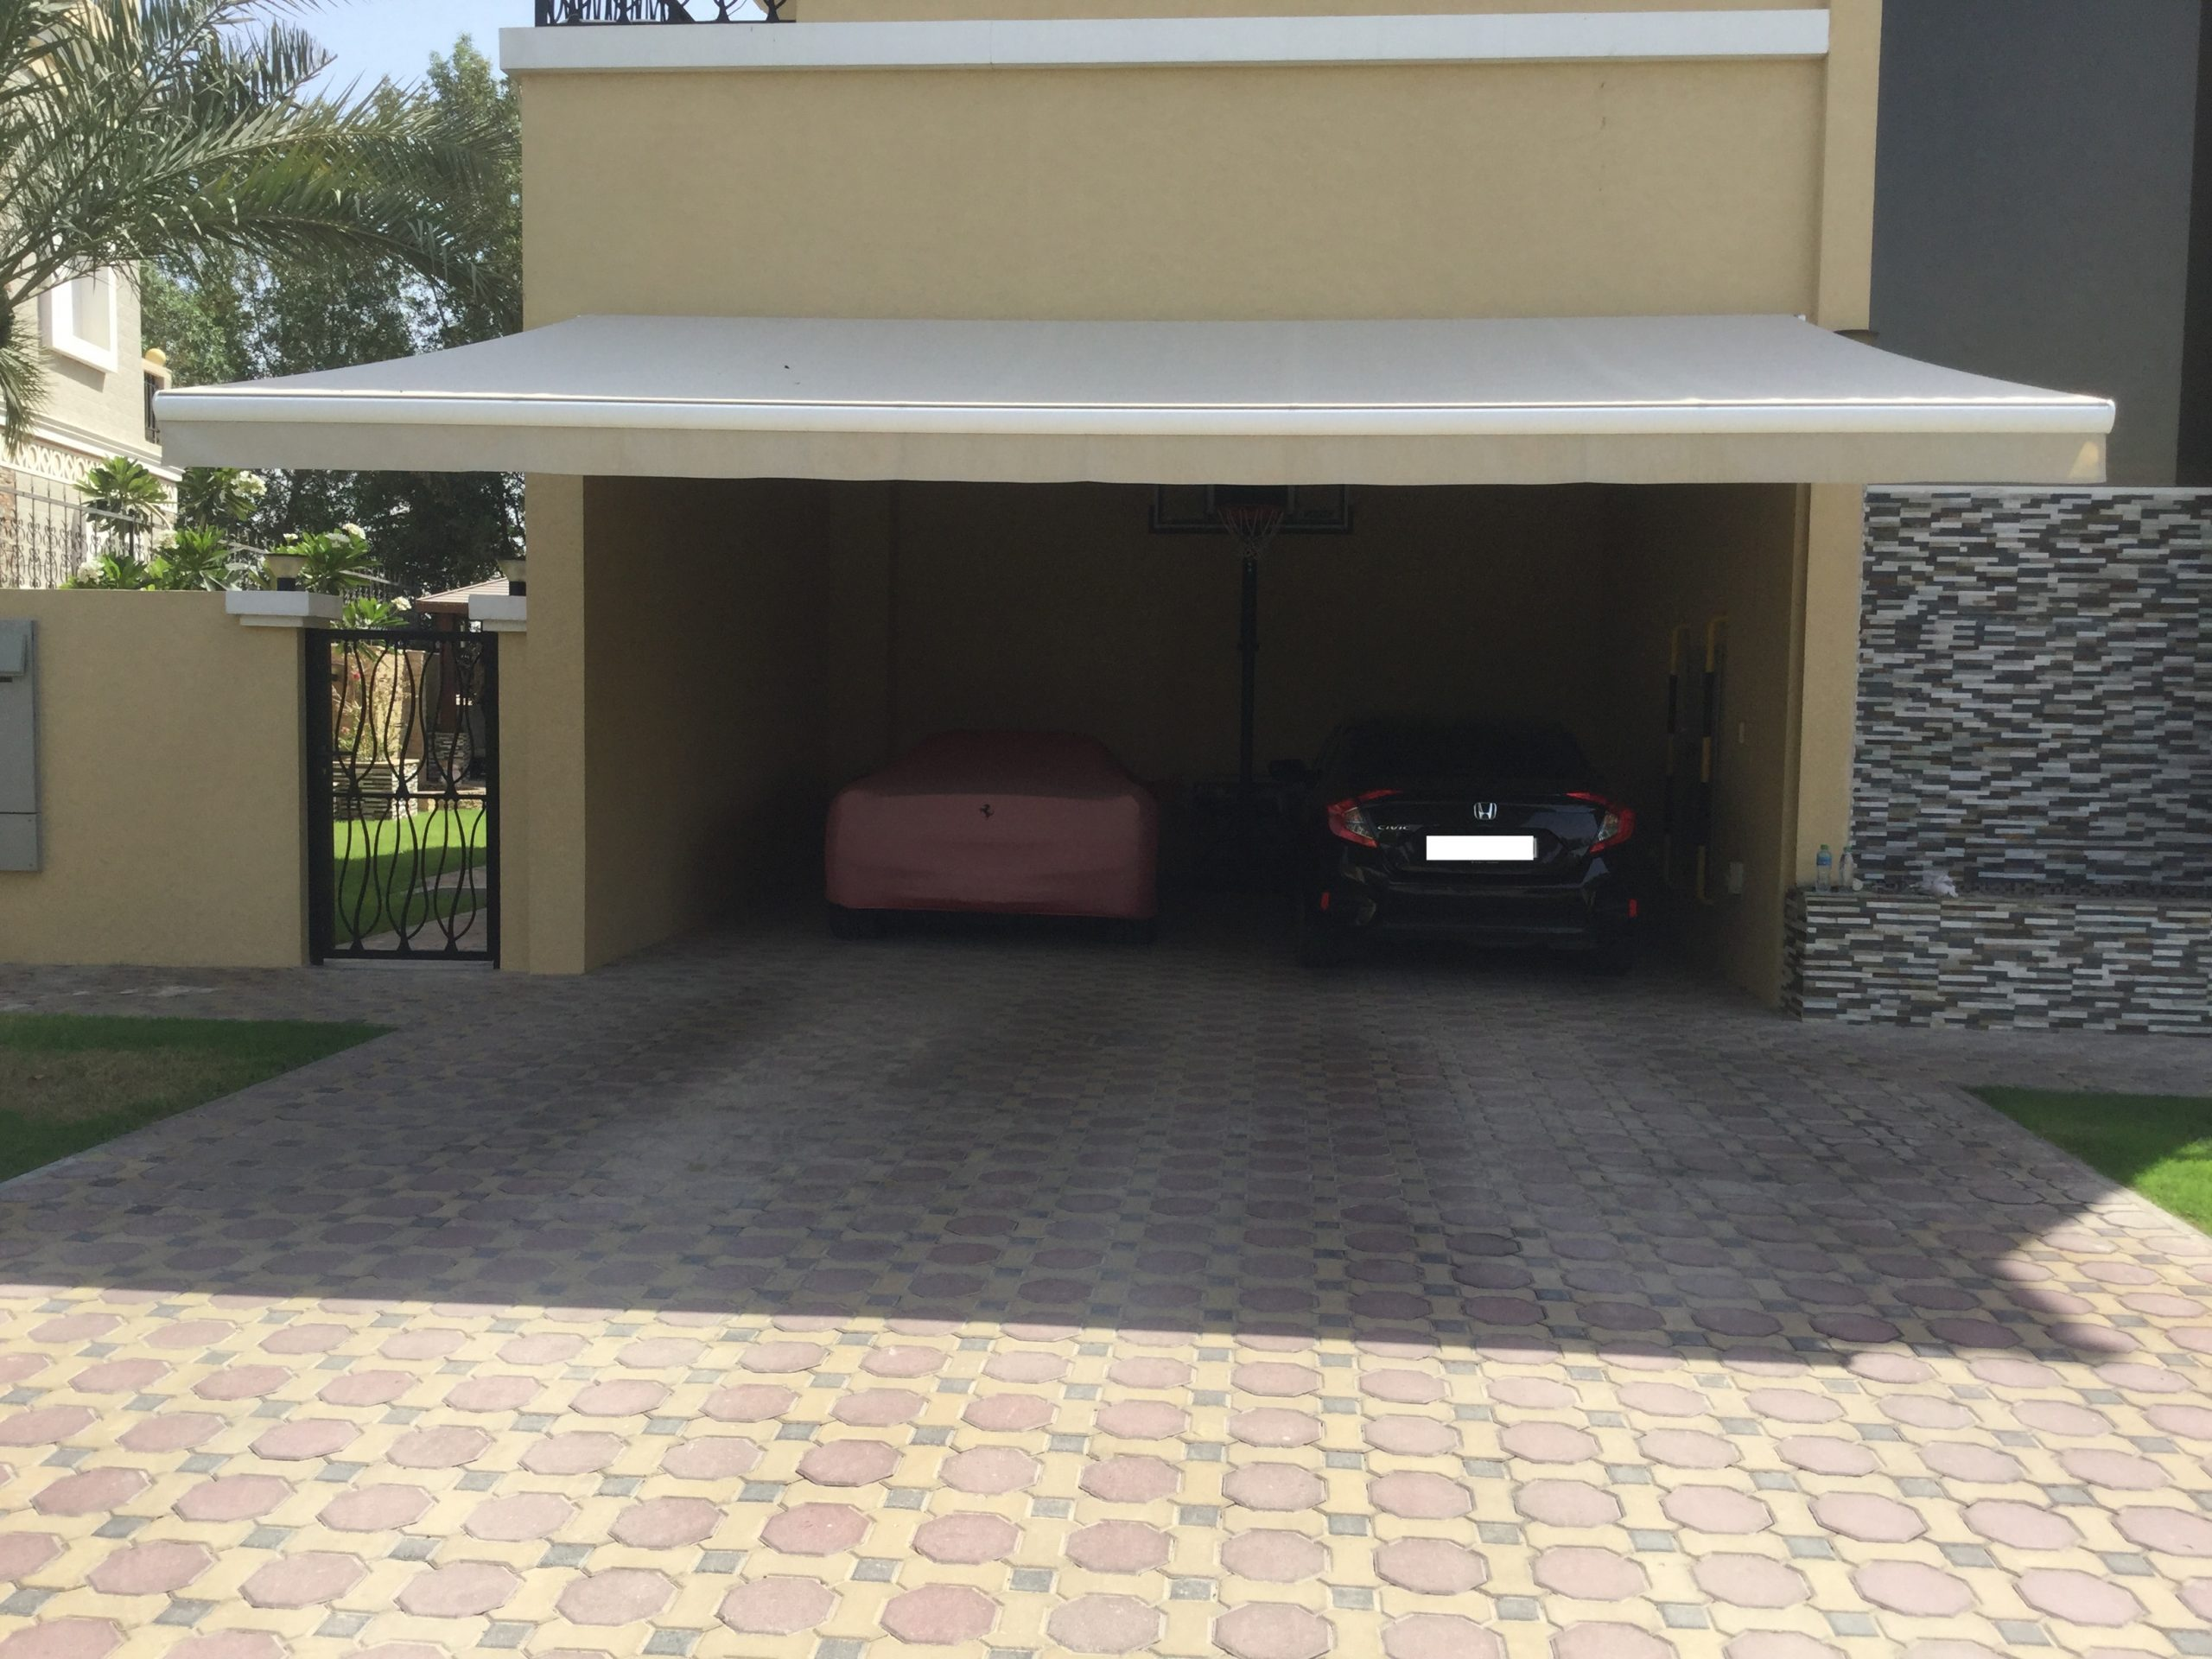 Arabian Ranches Carport Awning